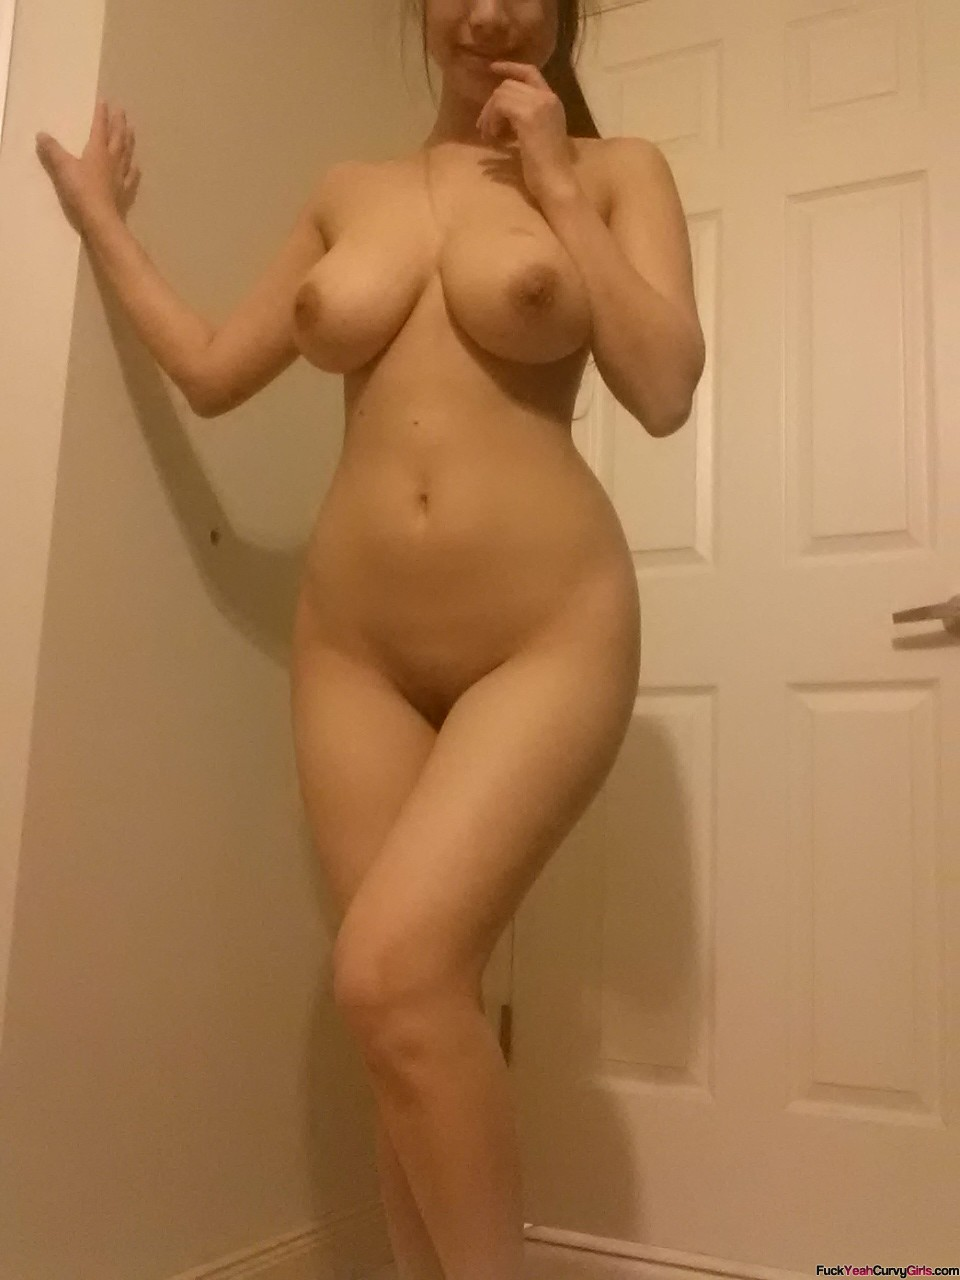 Sexy big hips small waist nude are